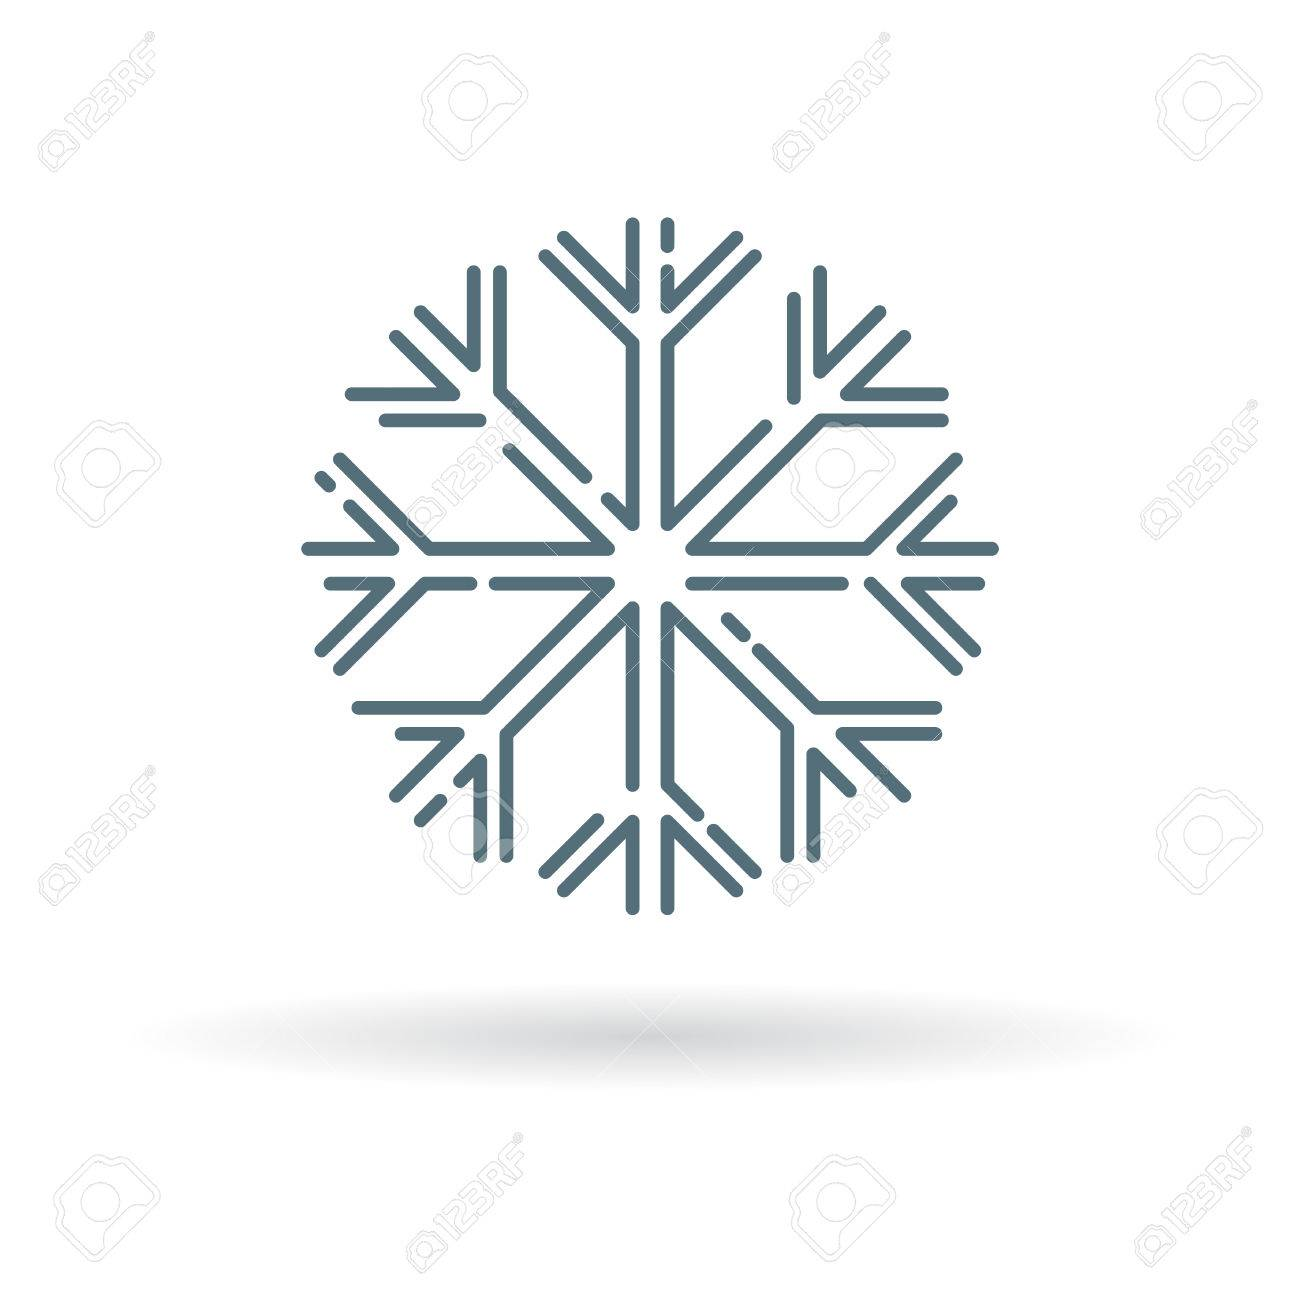 Snow Flake Icon Snow Flake Sign Snow Flake Symbol Thin Line